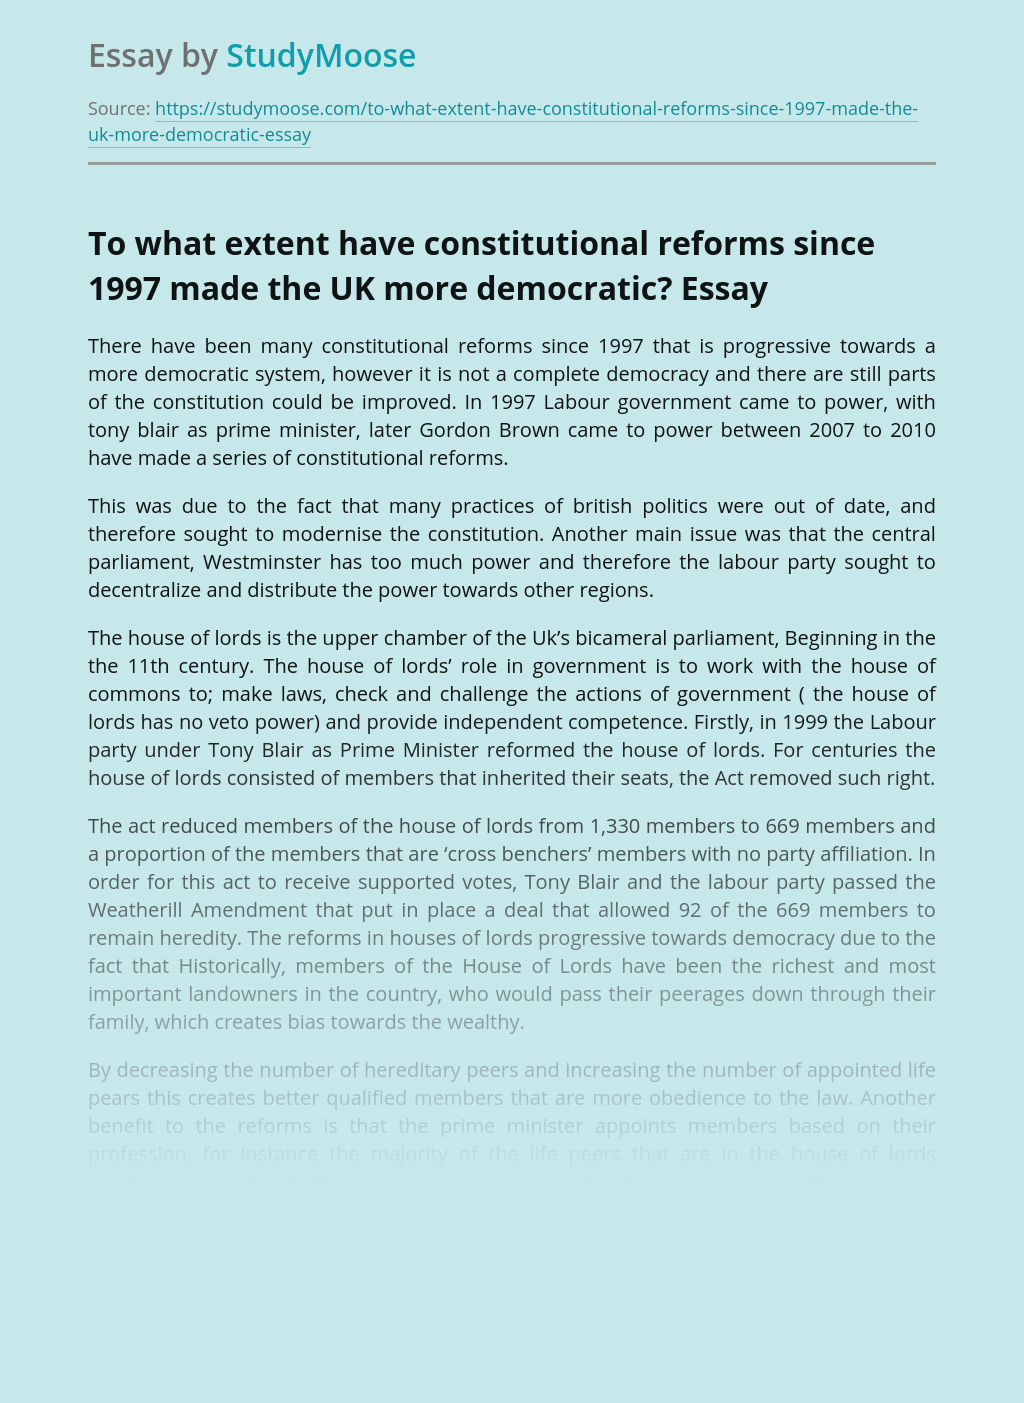 To what extent have constitutional reforms since 1997 made the UK more democratic?